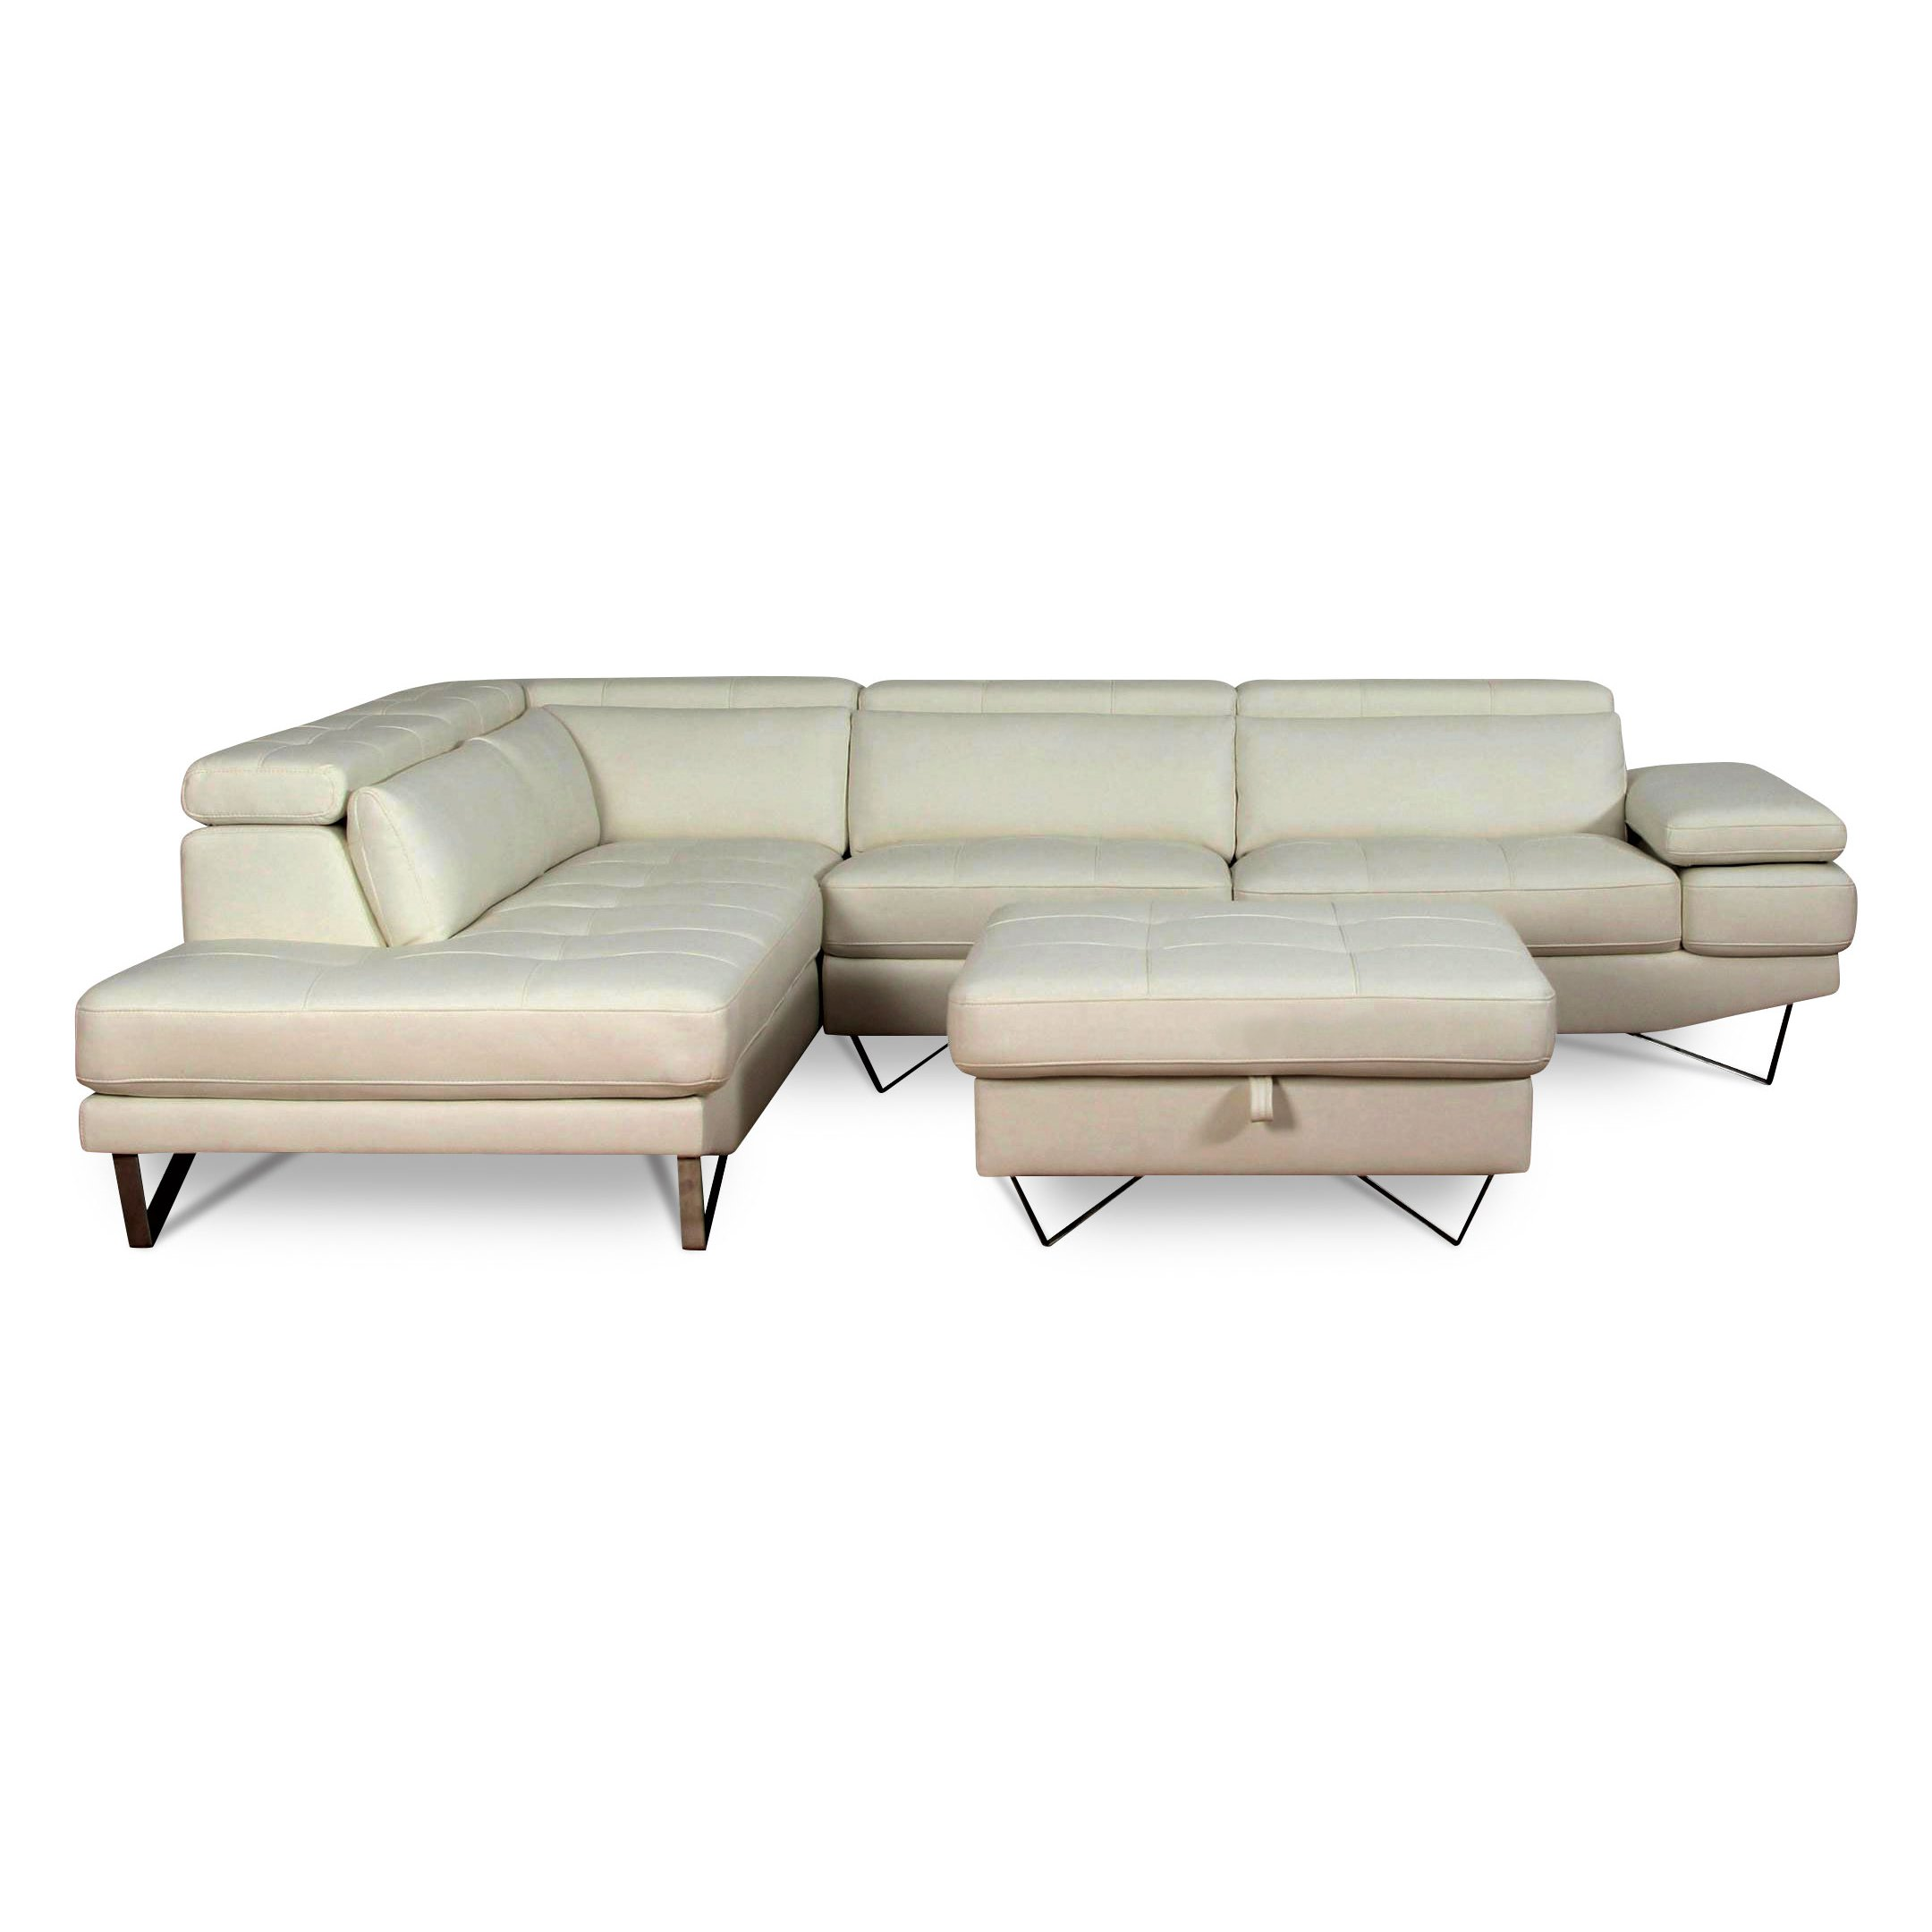 Modern White 2 Piece Sectional Sofa With RAF Sofa   Liberty | RC Willey  Furniture Store